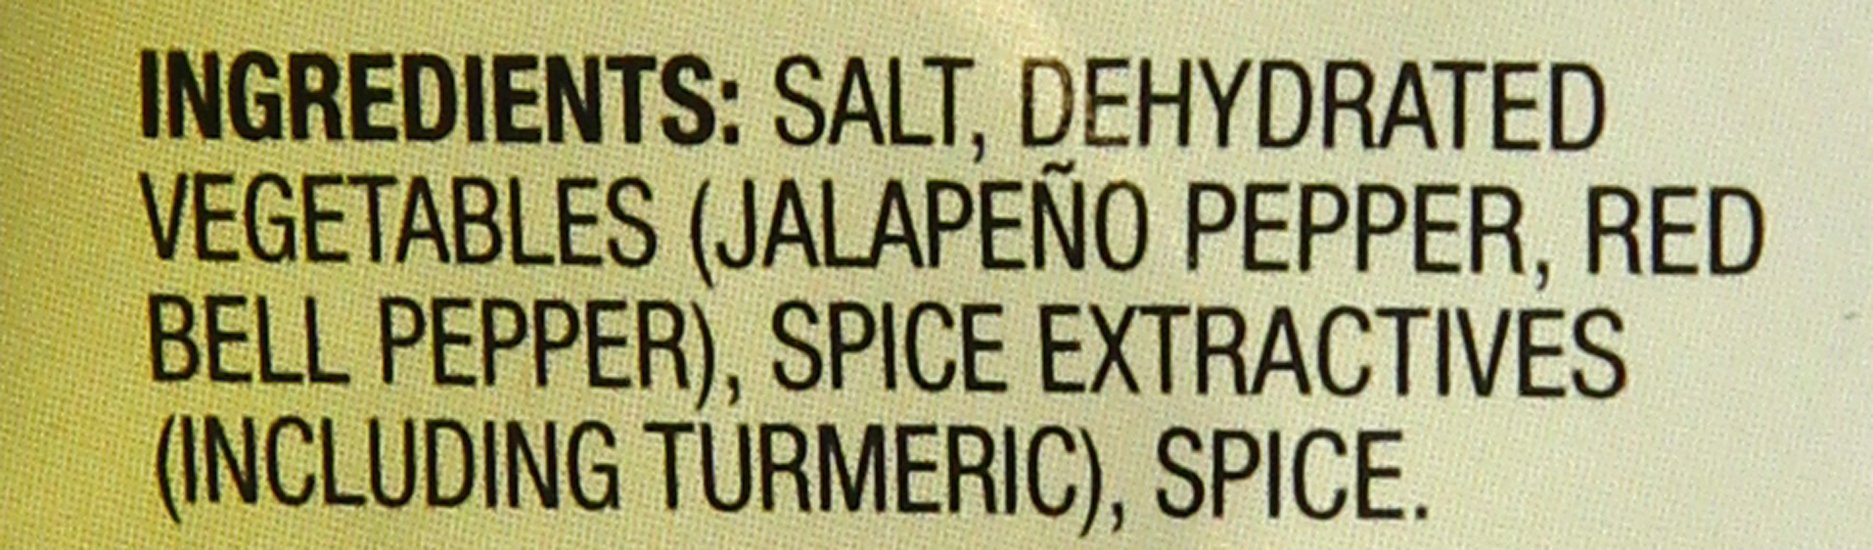 Mrs. Wages Quick Process Spicy Pickle Mix, Hot, 6.5 Ounce (Pack of 12) by Mrs. Wages (Image #3)